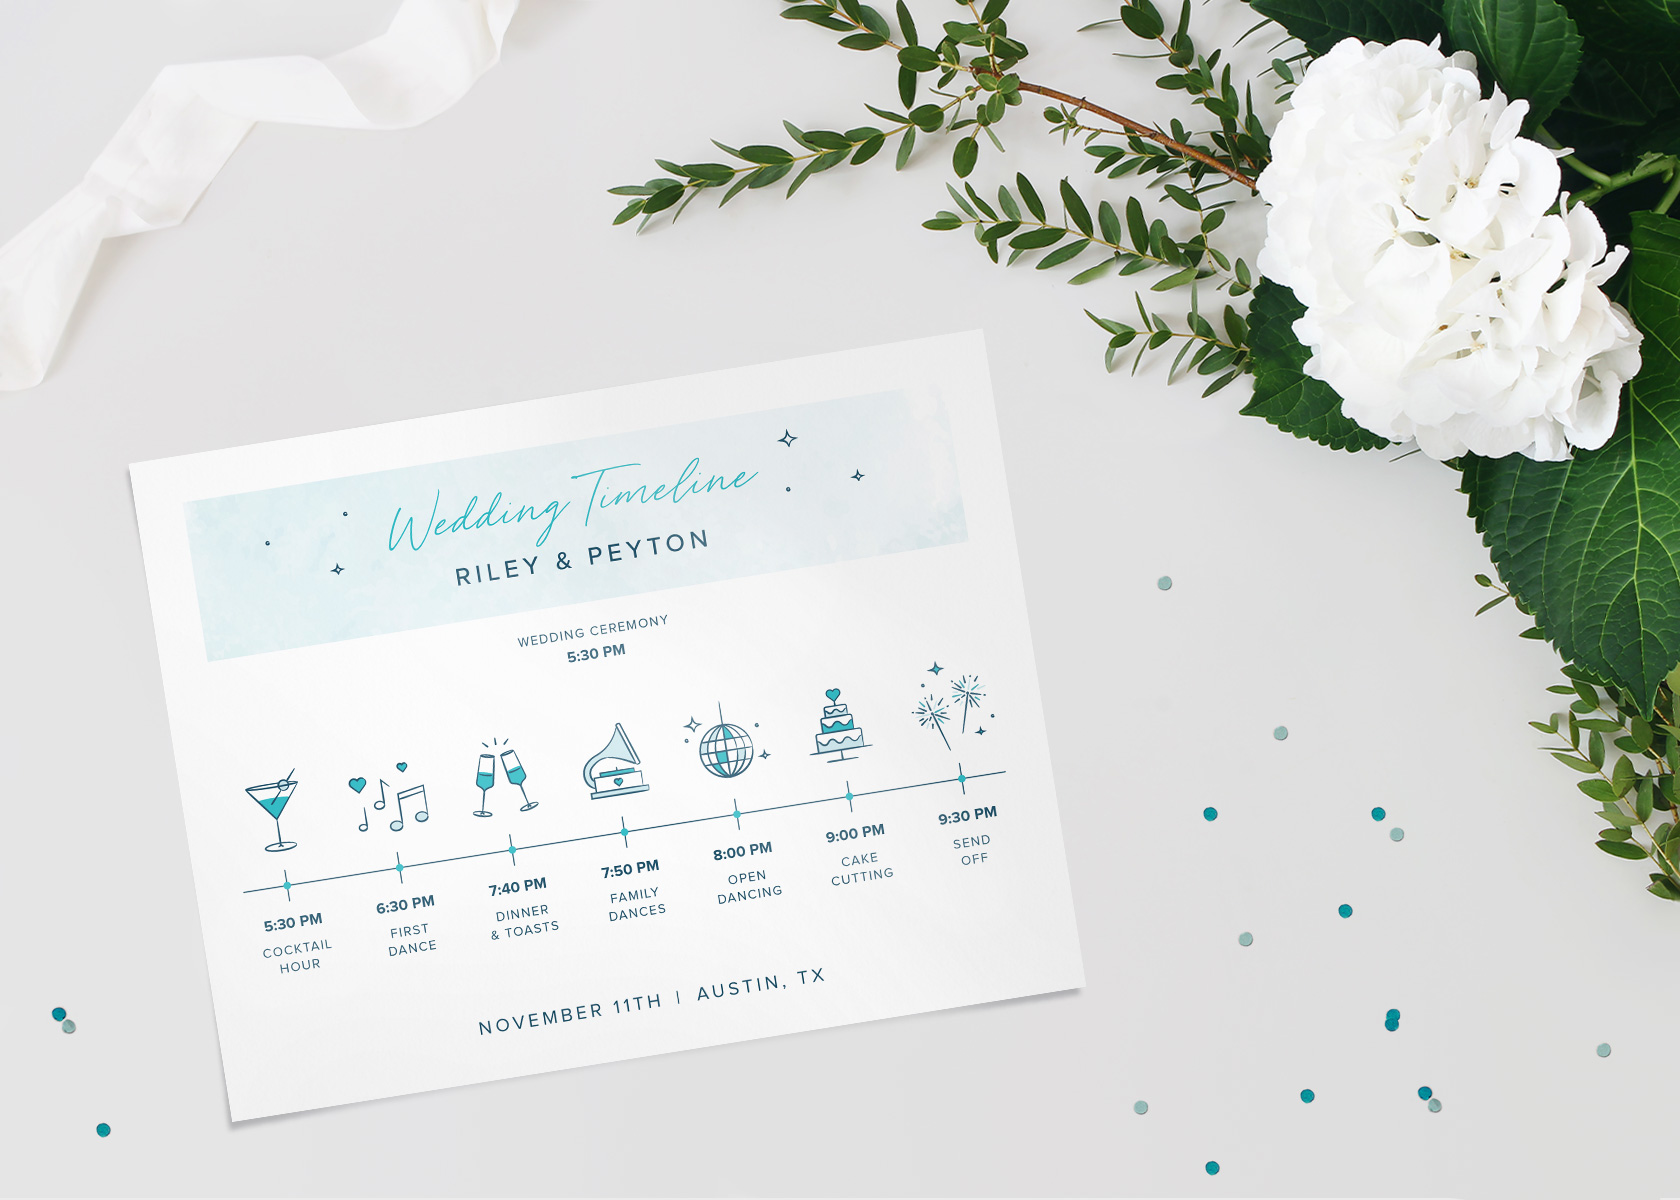 Wedding Reception Schedule Template from images.ctfassets.net